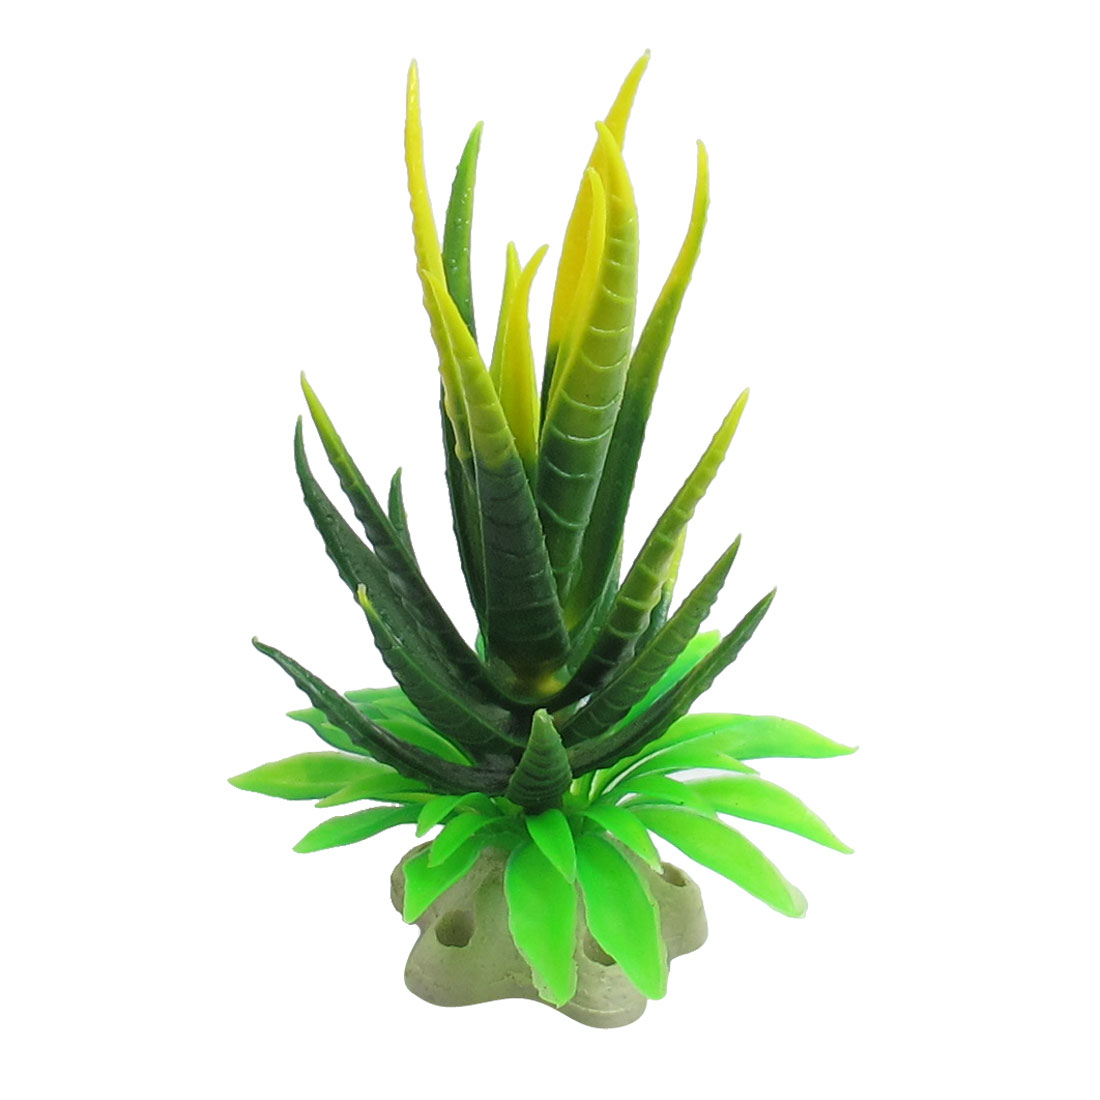 Aquarium Decor Star Shape Base Yellow Green Plastic Plant 4.7""